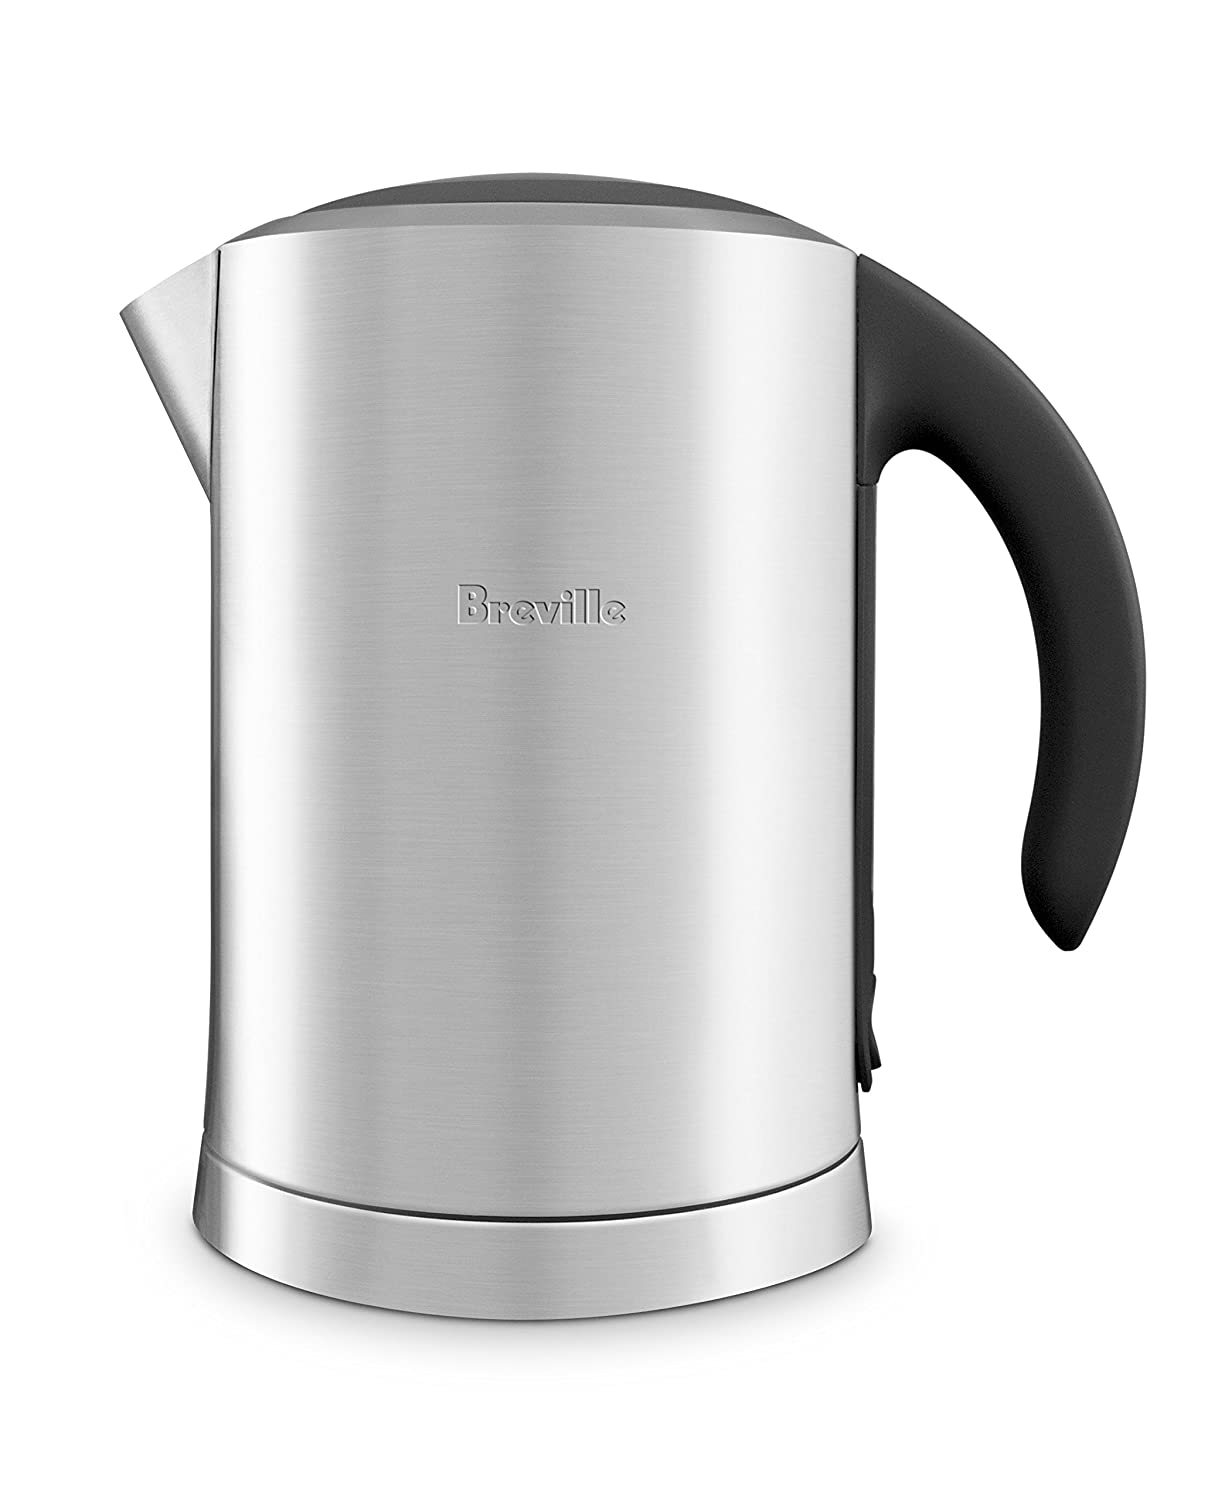 Breville SK500XL Ikon Cordless 1.7-Liter Stainless-Steel Electric Kettle Breville Kitchenware